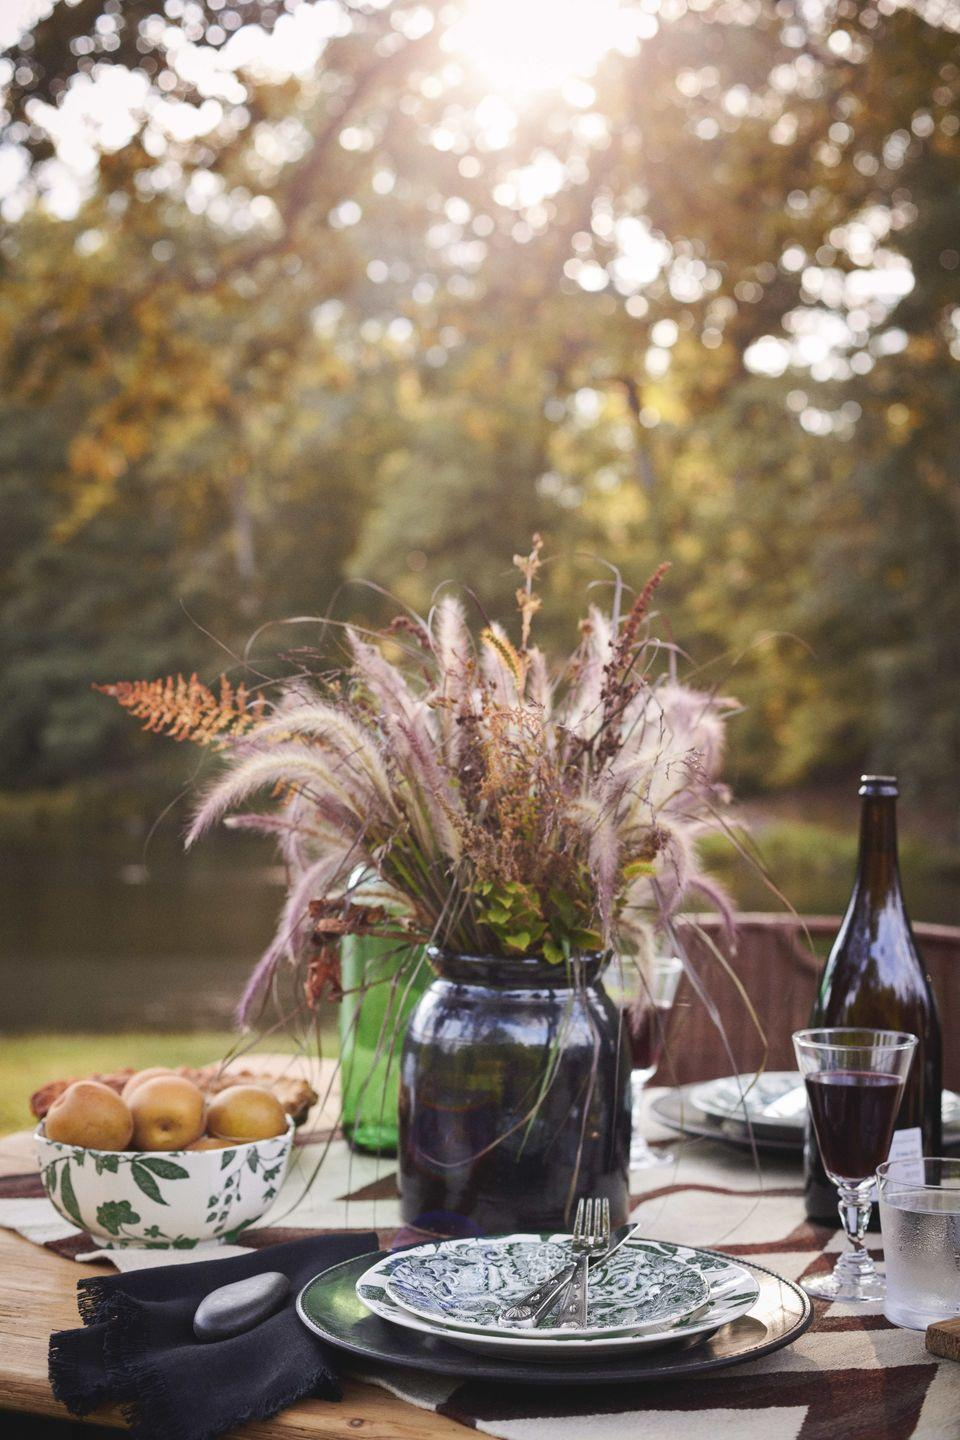 """<p>A centerpiece of fall grasses by <a href=""""https://go.redirectingat.com?id=74968X1596630&url=https%3A%2F%2Fwww.burleigh.co.uk%2F&sref=https%3A%2F%2Fwww.veranda.com%2Fhome-decorators%2Fg33339999%2Ffall-centerpieces-ideas%2F"""" rel=""""nofollow noopener"""" target=""""_blank"""" data-ylk=""""slk:Burleigh"""" class=""""link rapid-noclick-resp"""">Burleigh</a> and <a href=""""https://go.redirectingat.com?id=74968X1596630&url=https%3A%2F%2Fwww.ralphlauren.com%2F&sref=https%3A%2F%2Fwww.veranda.com%2Fhome-decorators%2Fg33339999%2Ffall-centerpieces-ideas%2F"""" rel=""""nofollow noopener"""" target=""""_blank"""" data-ylk=""""slk:Ralph Lauren"""" class=""""link rapid-noclick-resp"""">Ralph Lauren</a> with a bowl of apples feels laid-back yet utterly sophisticated for an easy, cool-weather table centerpiece.</p>"""